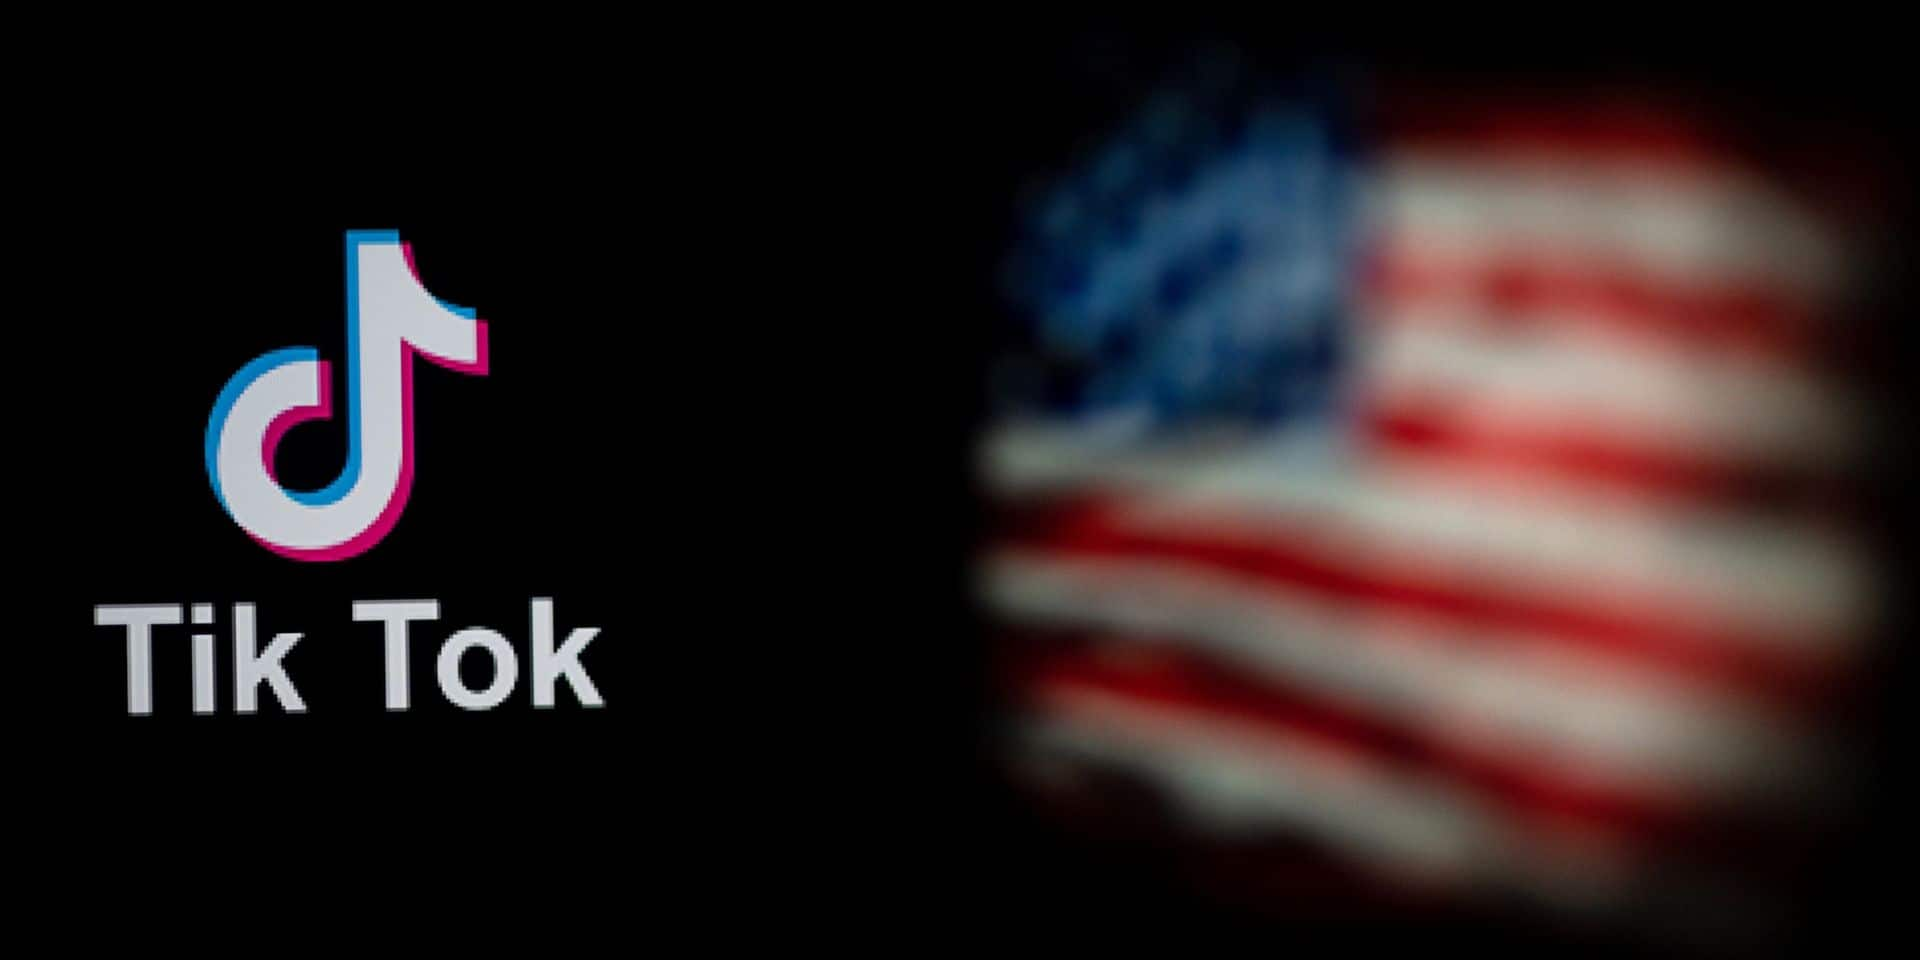 Menacée d'interdiction aux Etats-Unis, l'application TikTok obtient un sursis